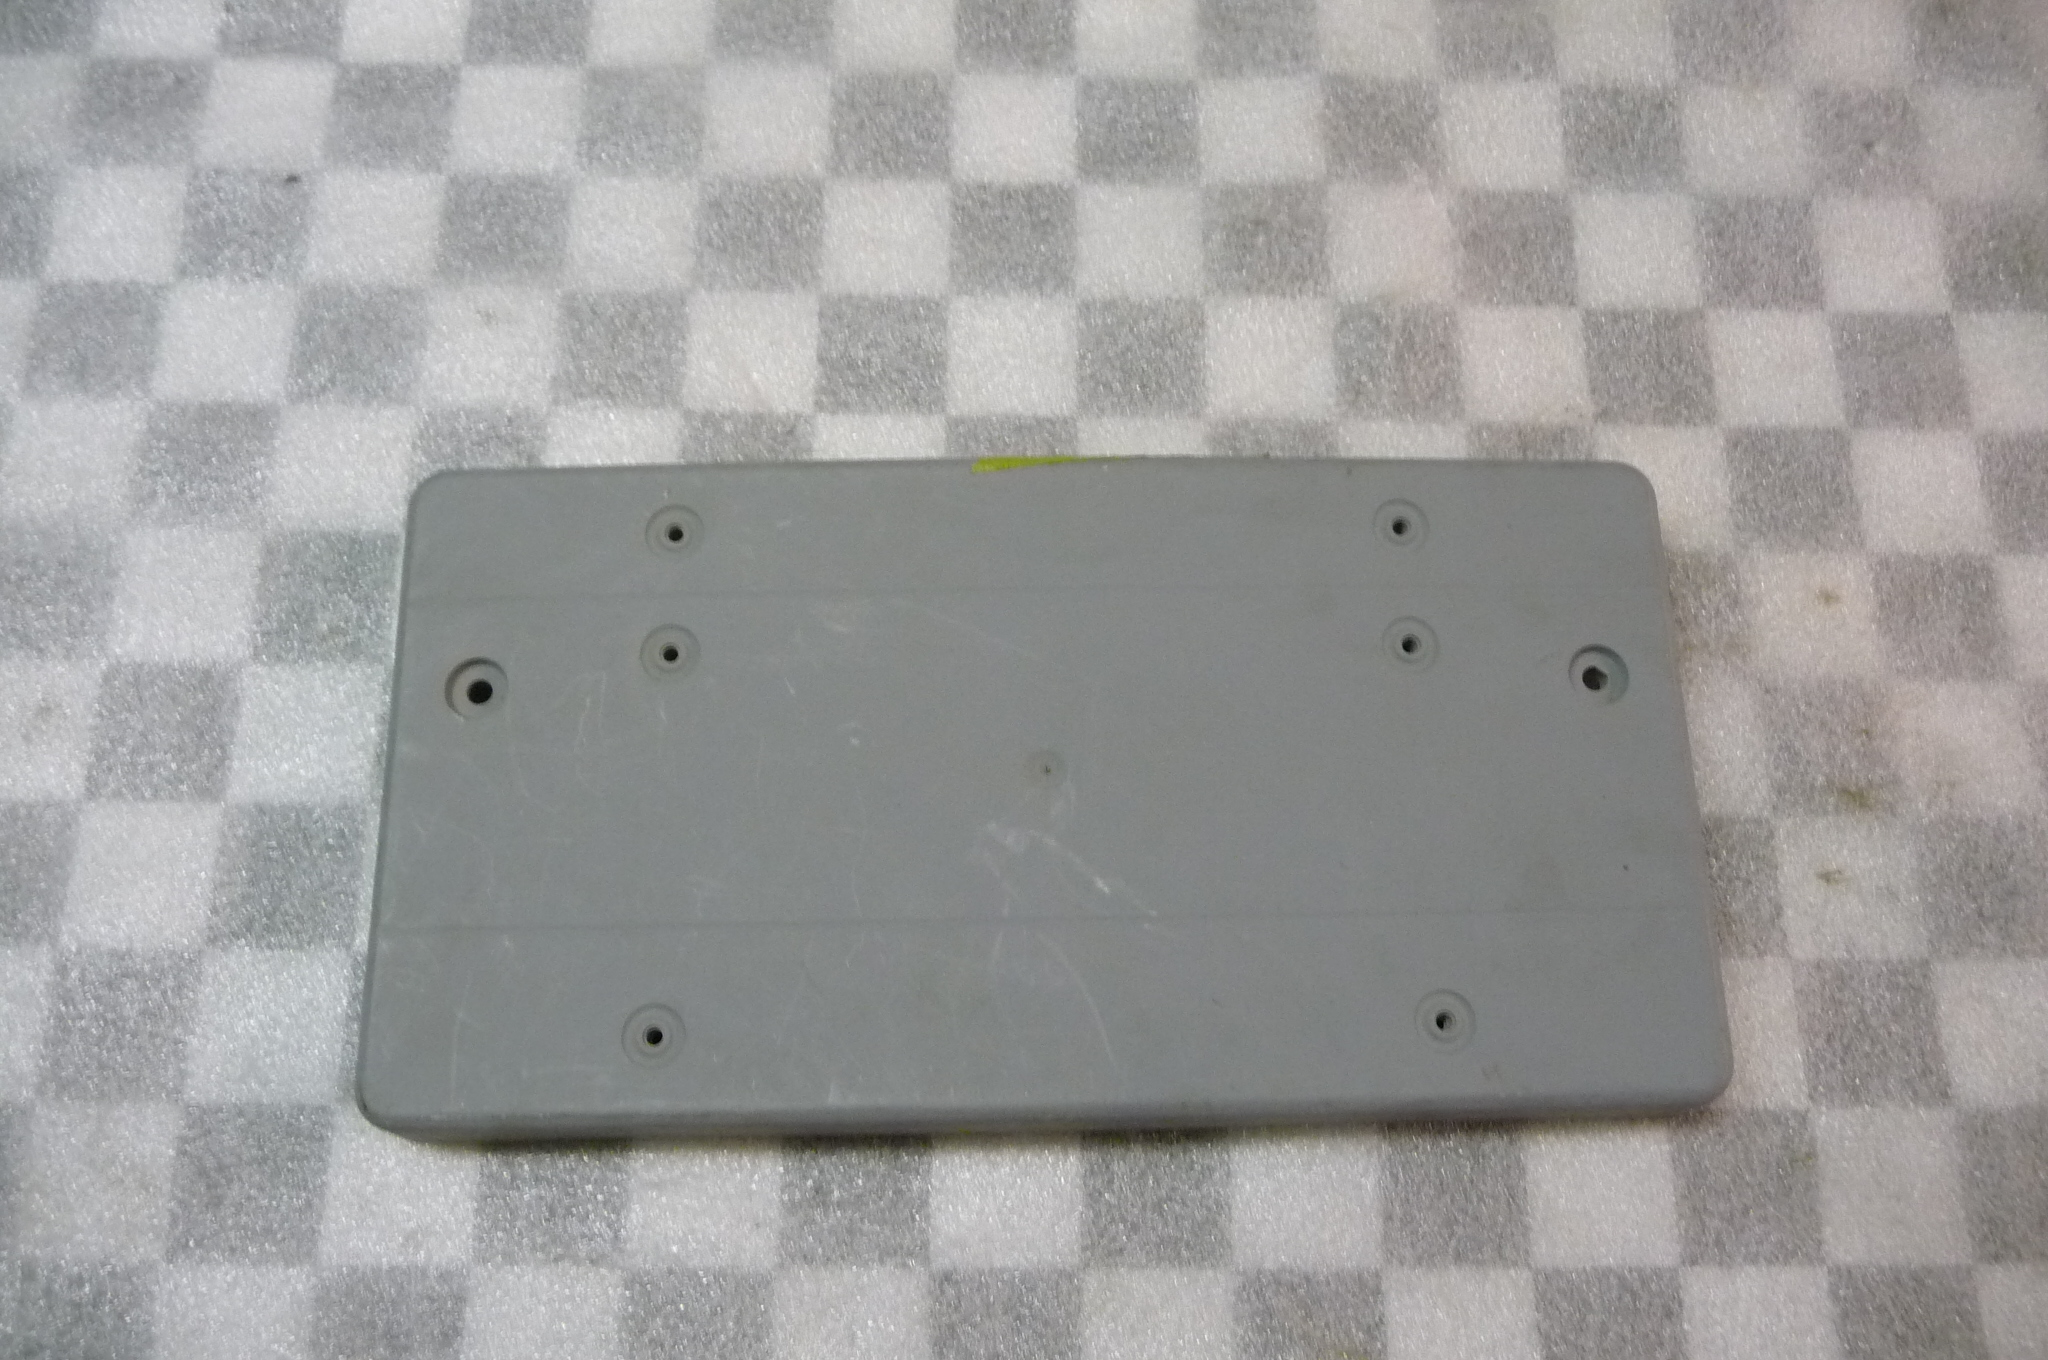 Mercedes Benz ML Front Bumper Licence Plate Moulding -NEW- A 1638850381 OEM OE